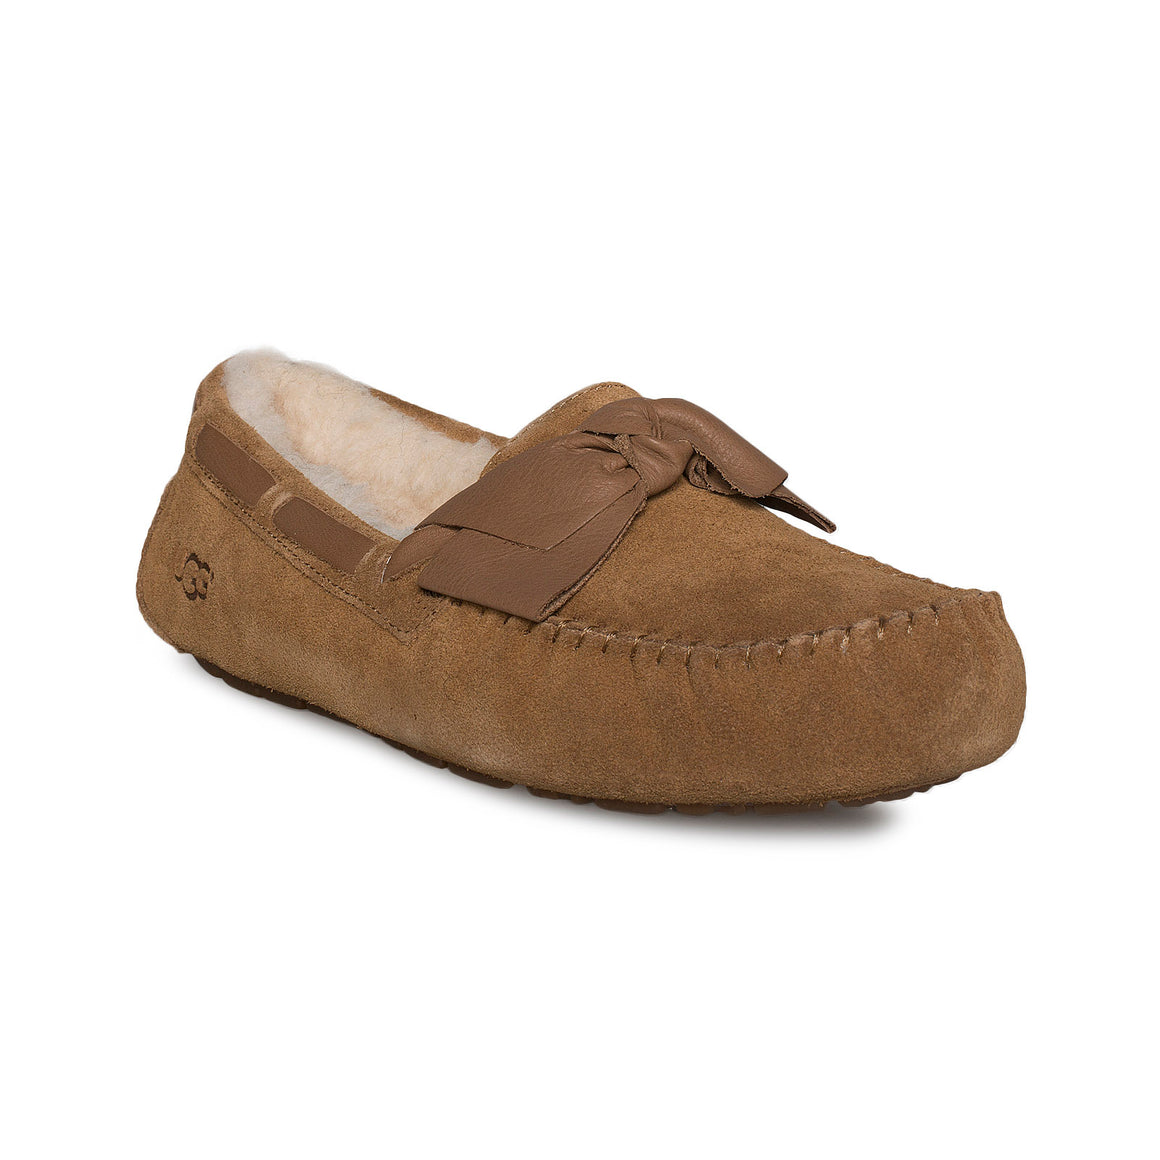 UGG Dakota Leather Bow Chestnut Slippers - Women's